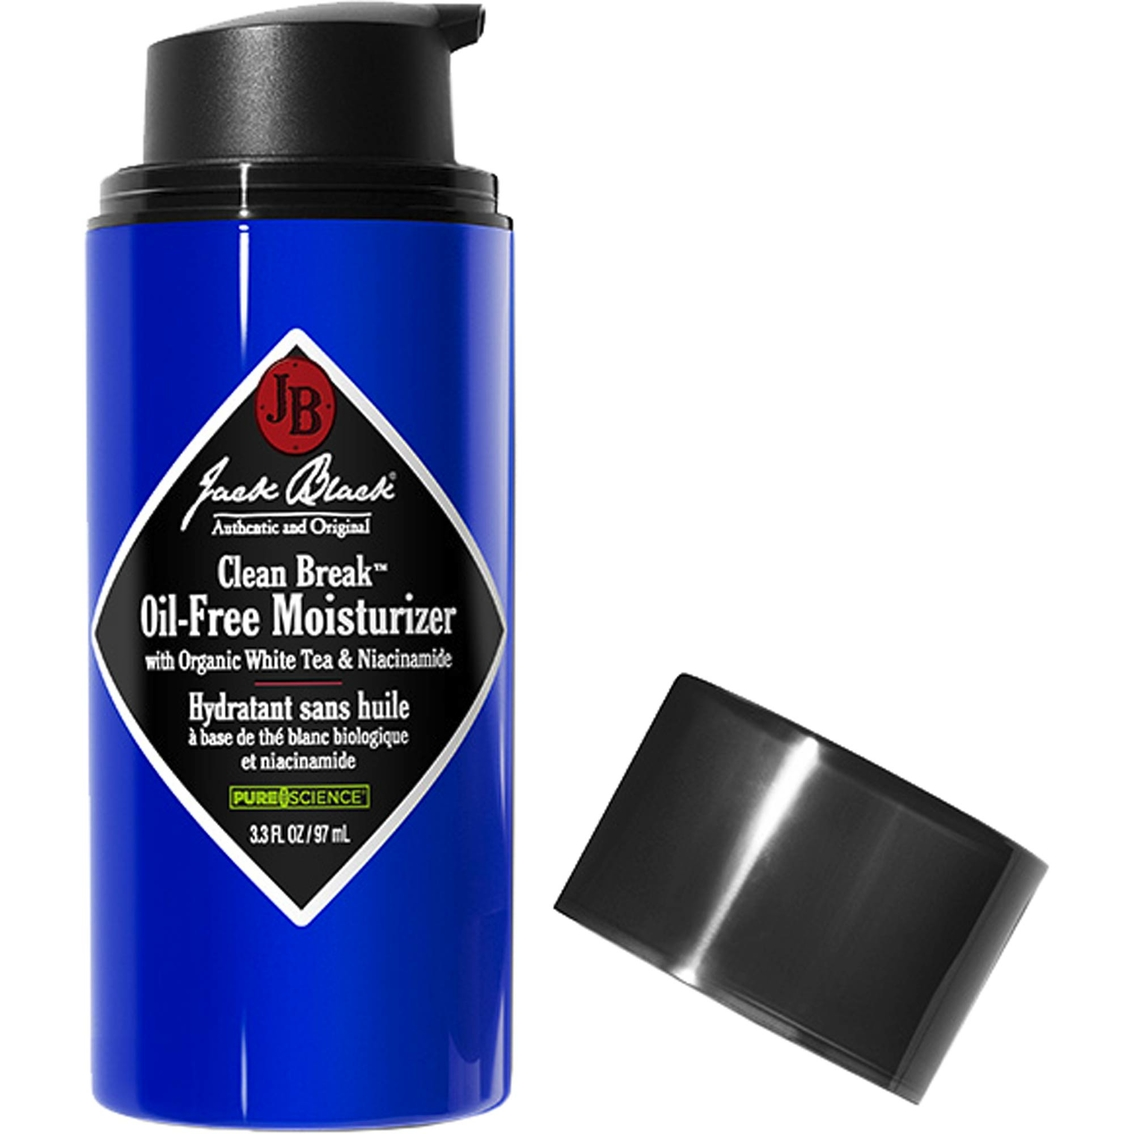 jack black clean break oil free moisturizer